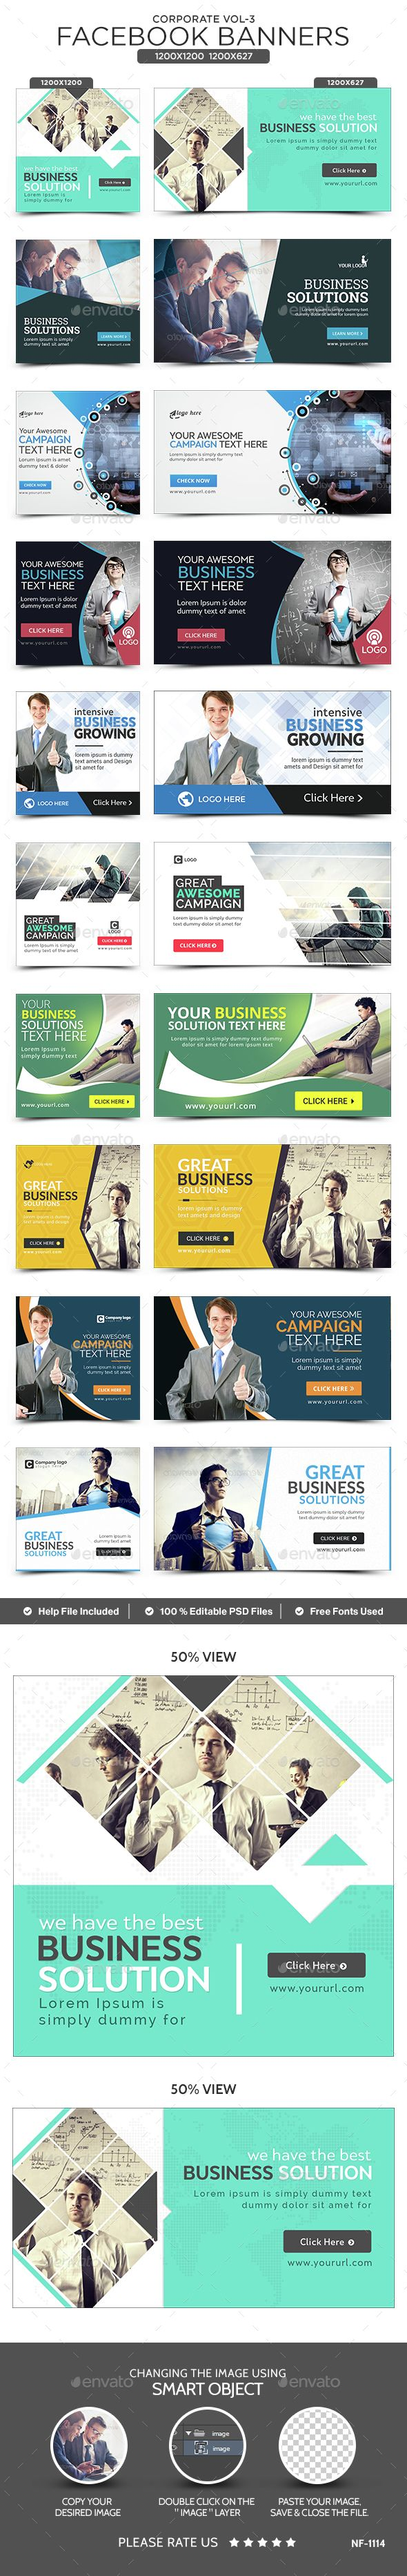 Corporate Facebook Banners - 10 Designs - 20 Banners - Social Media Web Elements